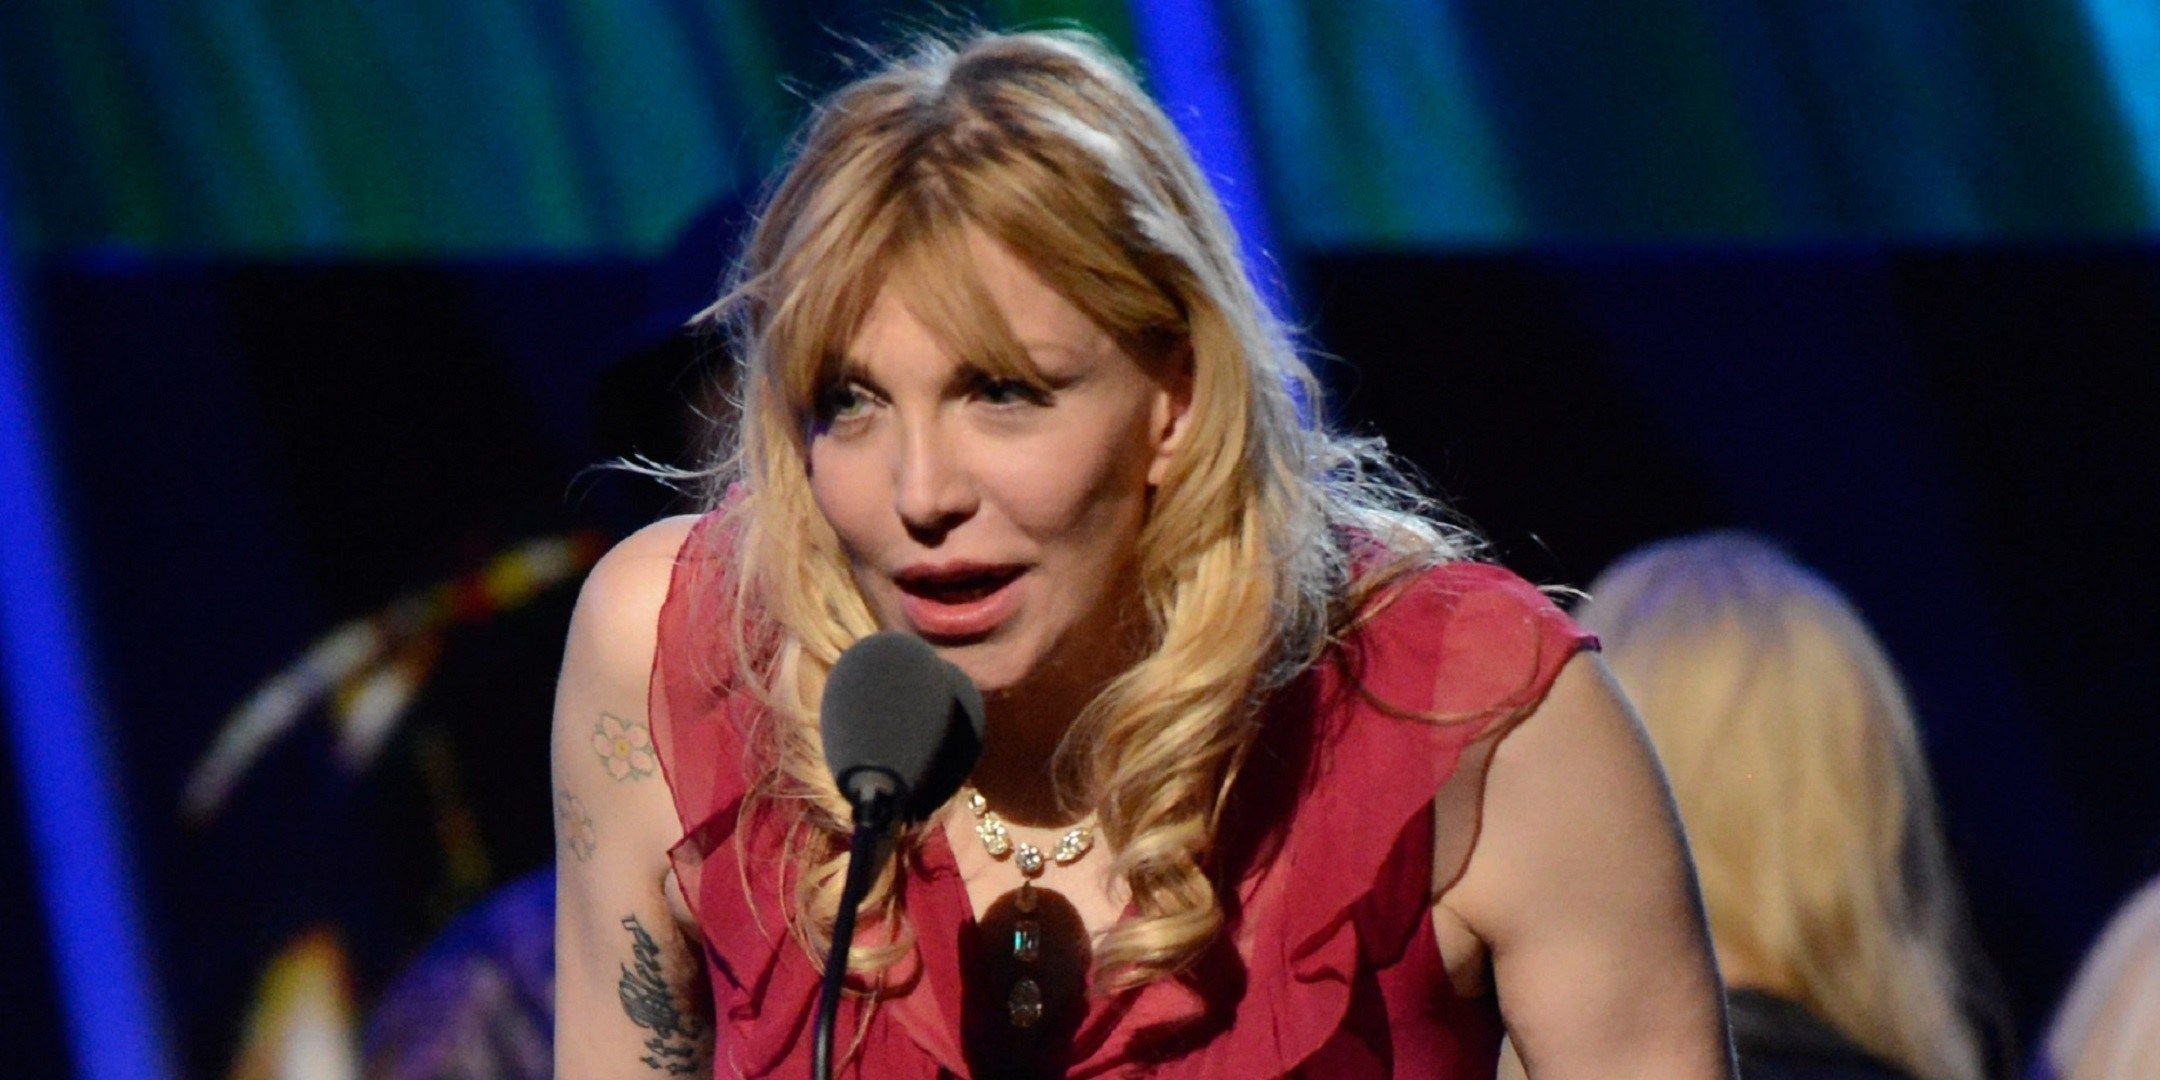 2160x1080 px courtney love pic - Full HD Wallpapers, Photos by Becker Gordon